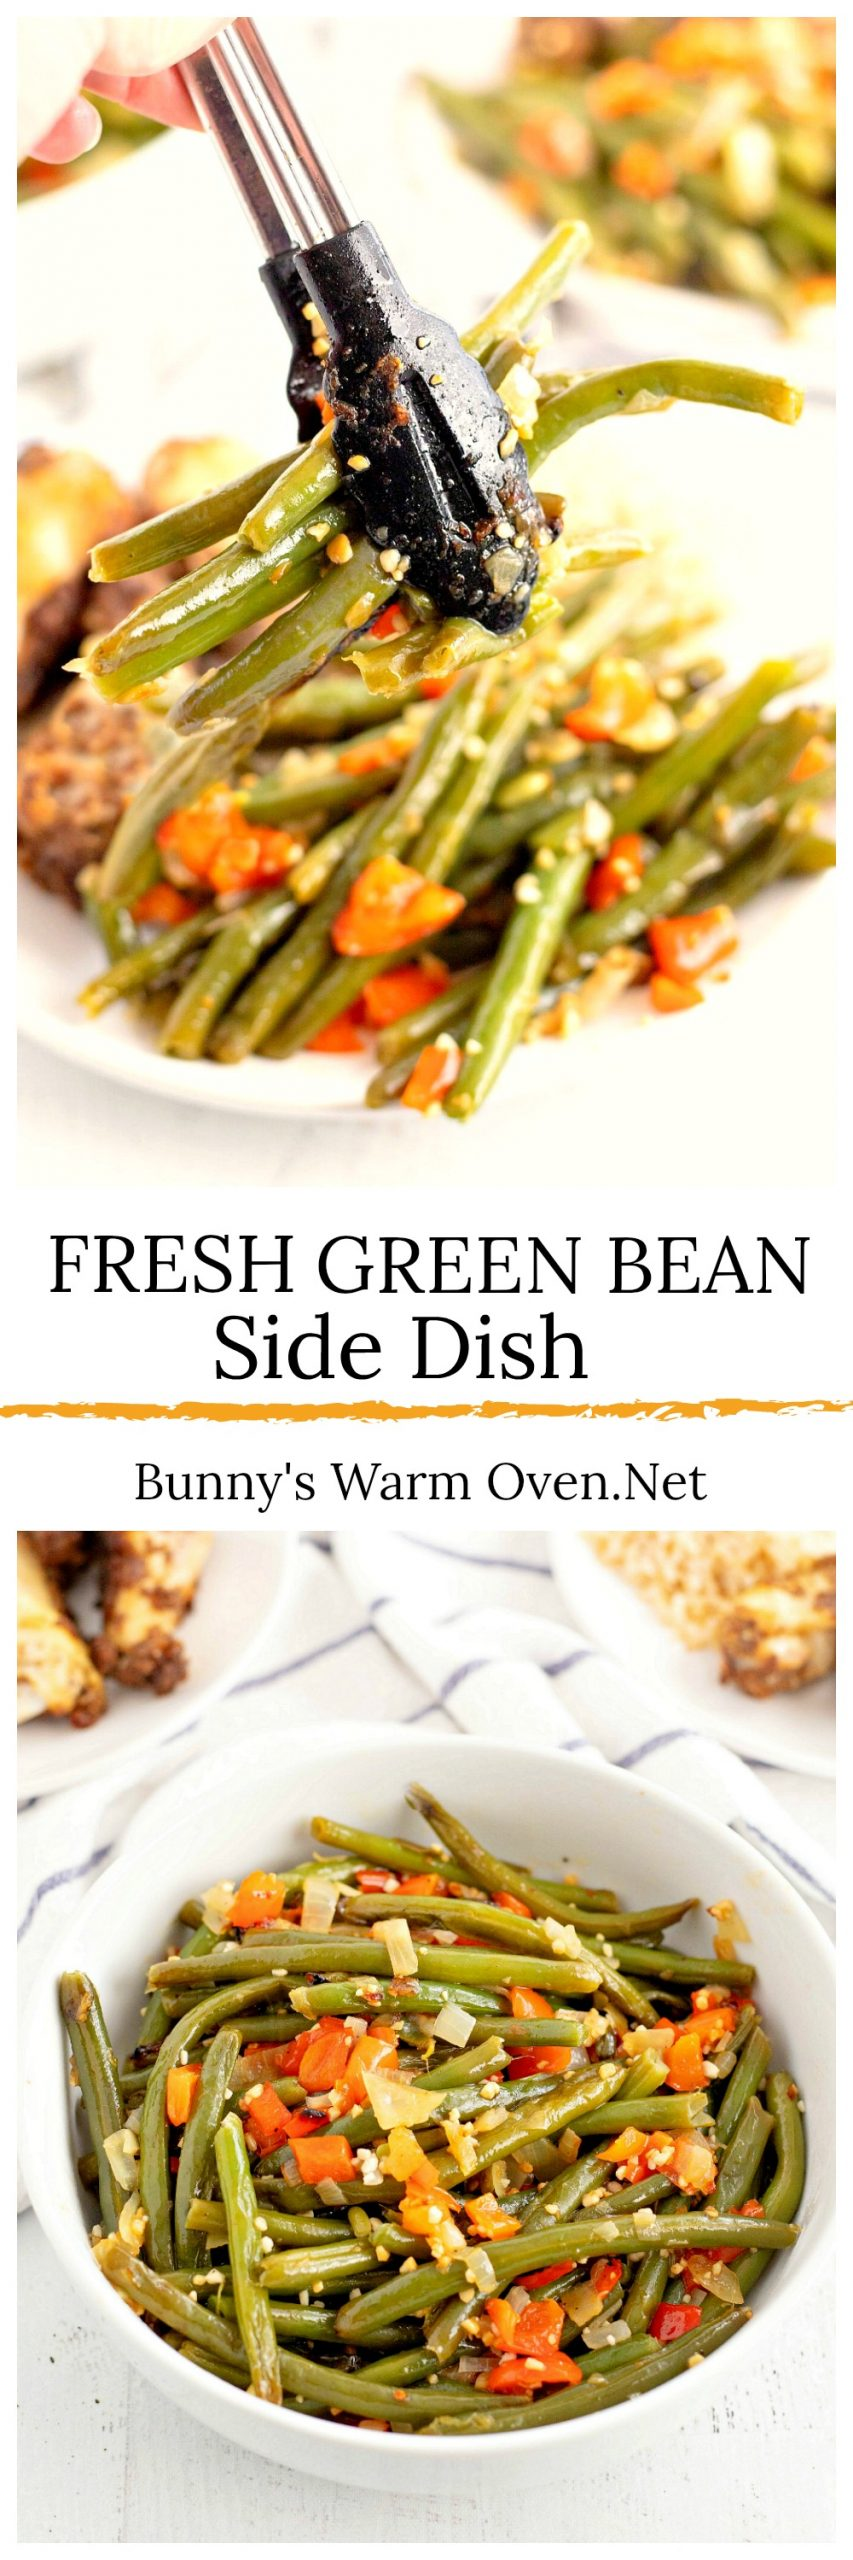 Fresh Green Bean Side Dish via @BunnysWarmOven